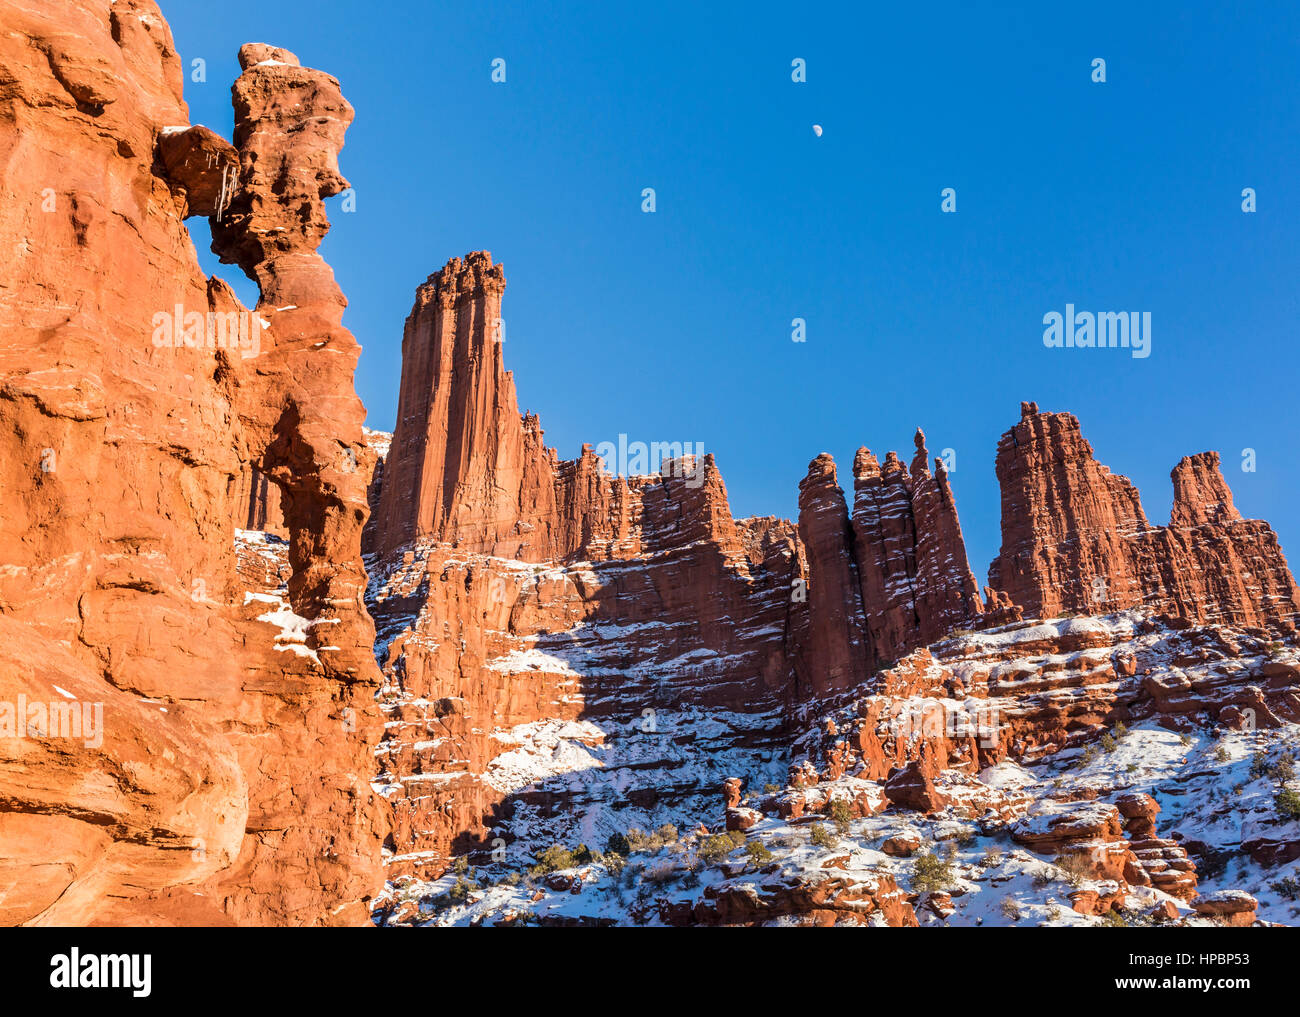 The Titan Tower and jug handle arches, part of the Fisher Towers rock formations near Moab, Utah - Stock Image